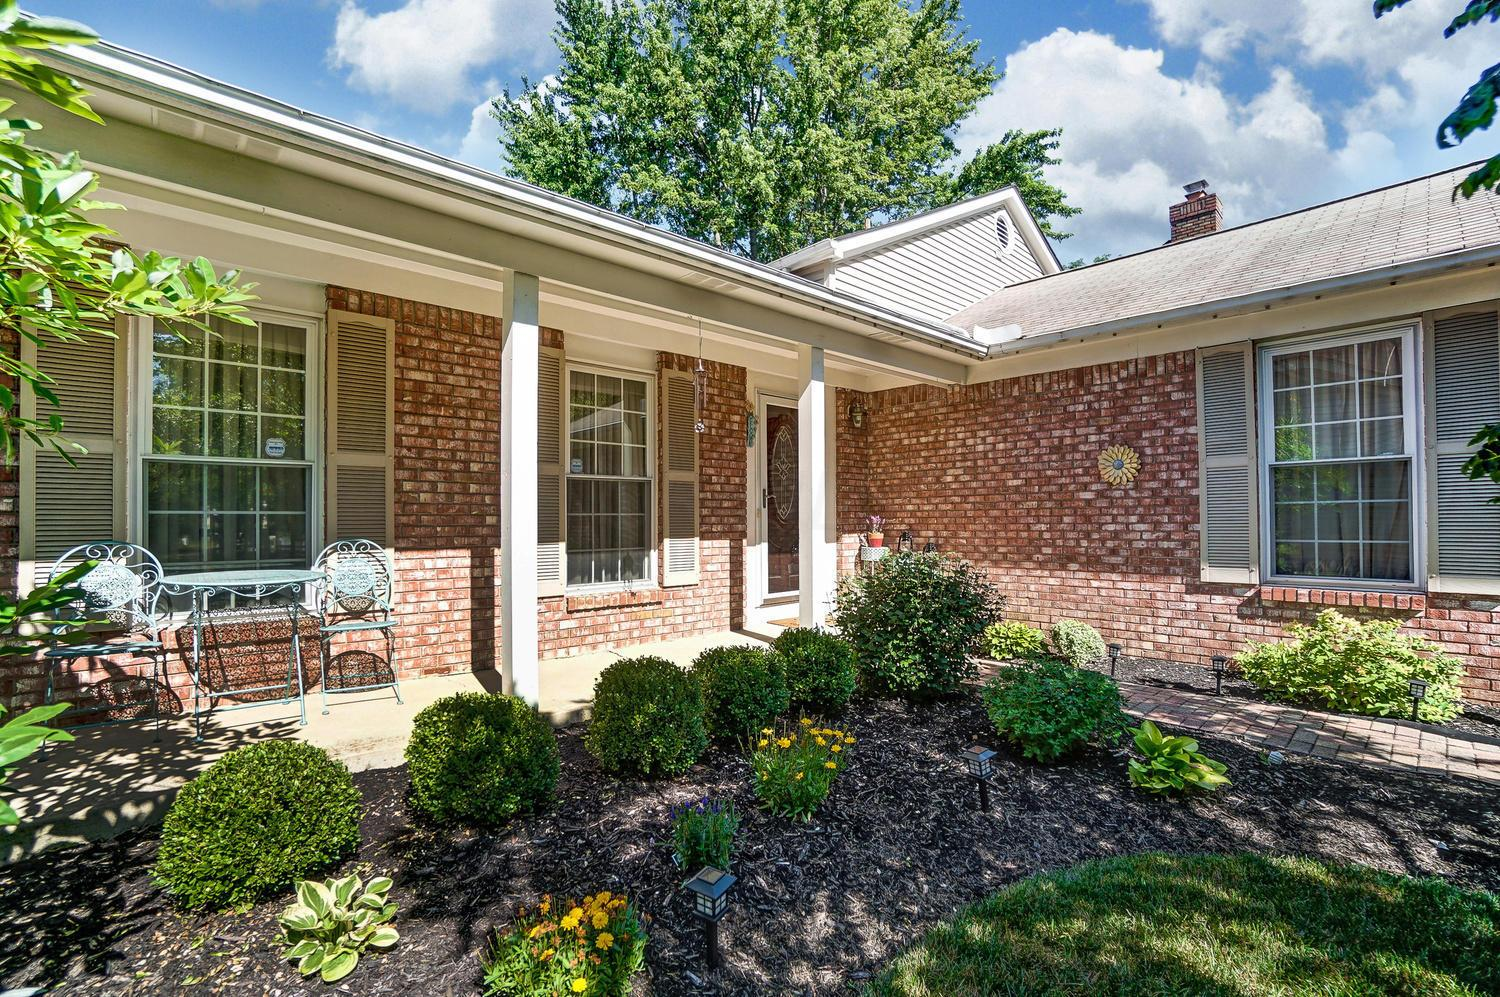 7881 Saddle Run, Powell, Ohio 43065, 3 Bedrooms Bedrooms, ,2 BathroomsBathrooms,Residential,For Sale,Saddle Run,220025290